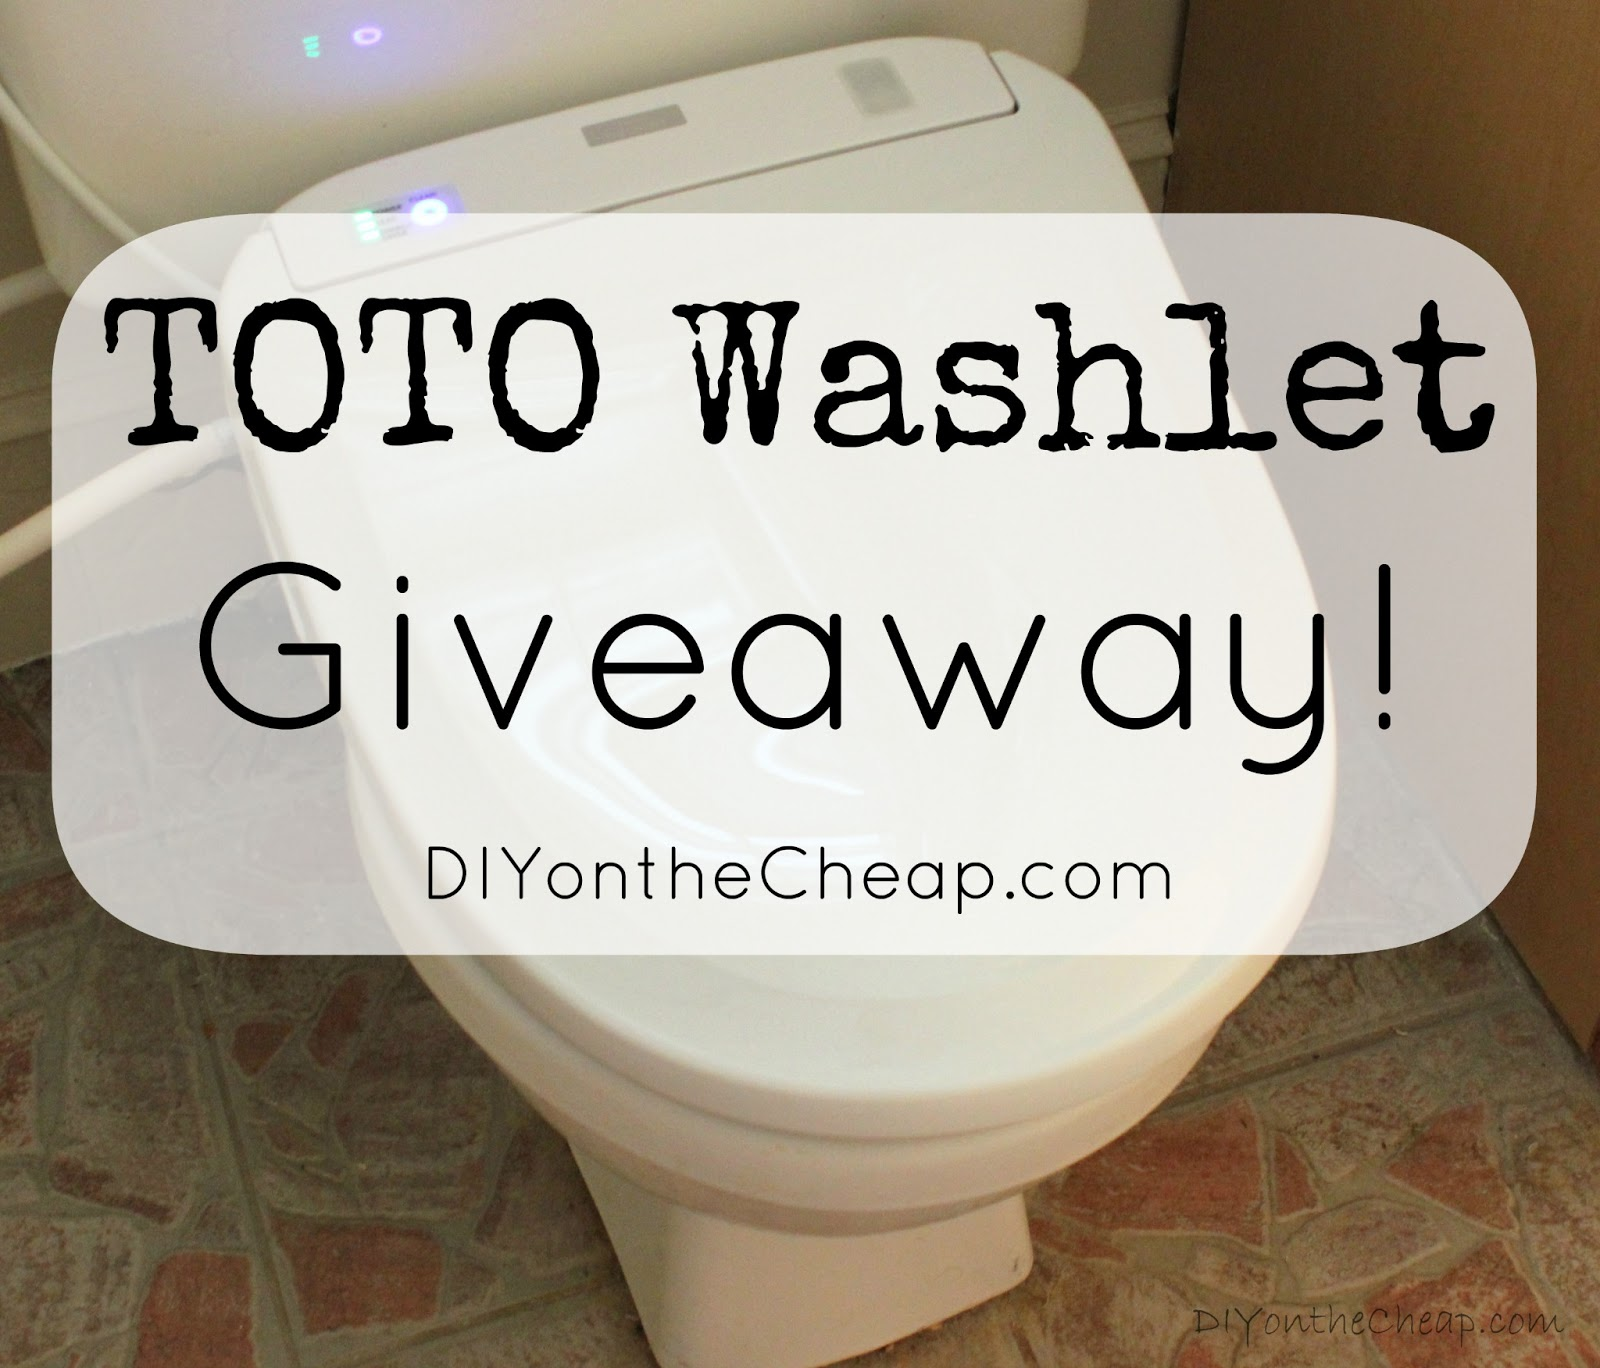 TOTO Washlet Review & Giveaway - Erin Spain